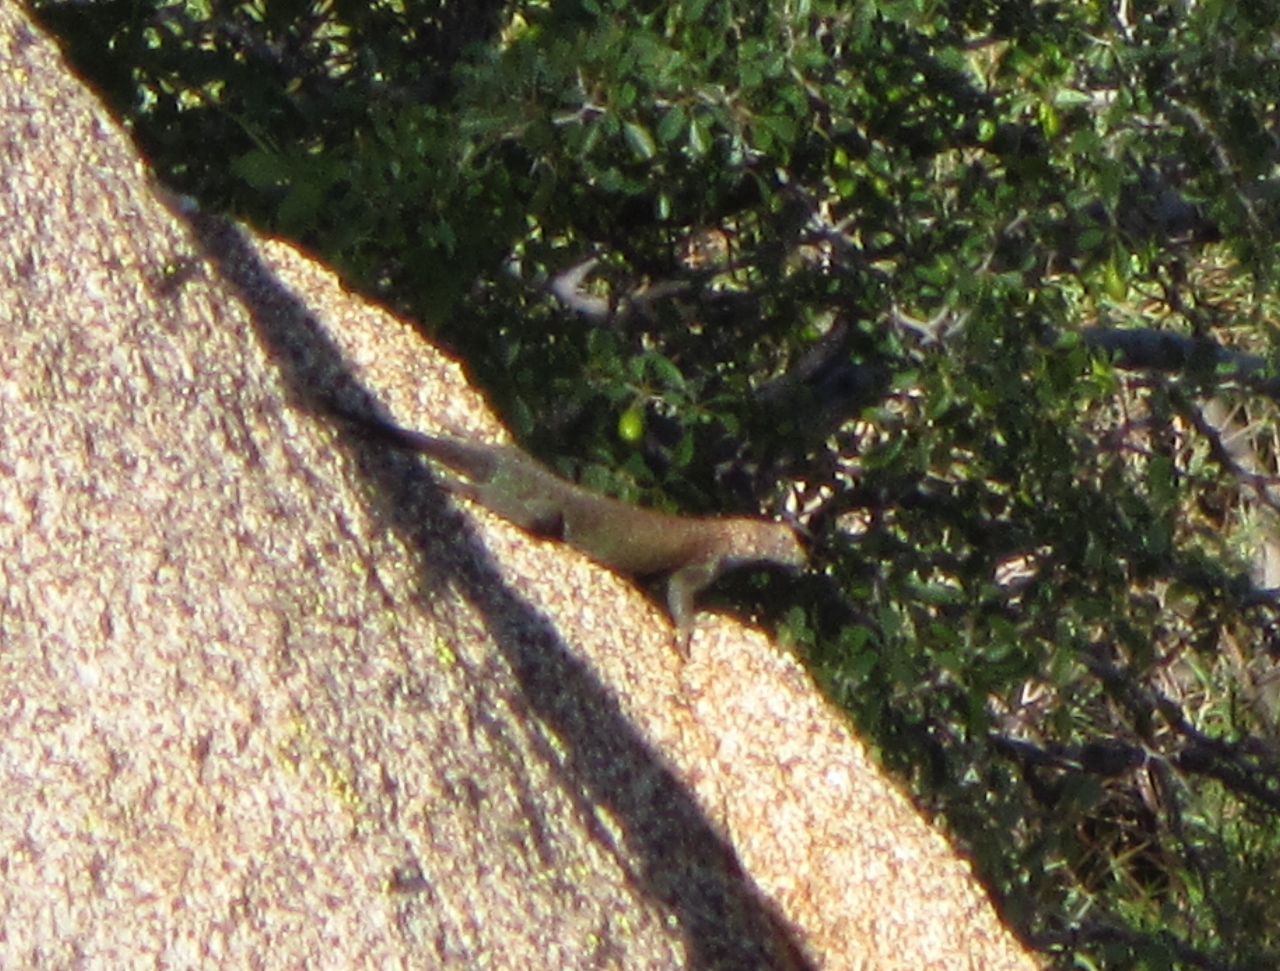 One of many species of lizards found in Los Osos